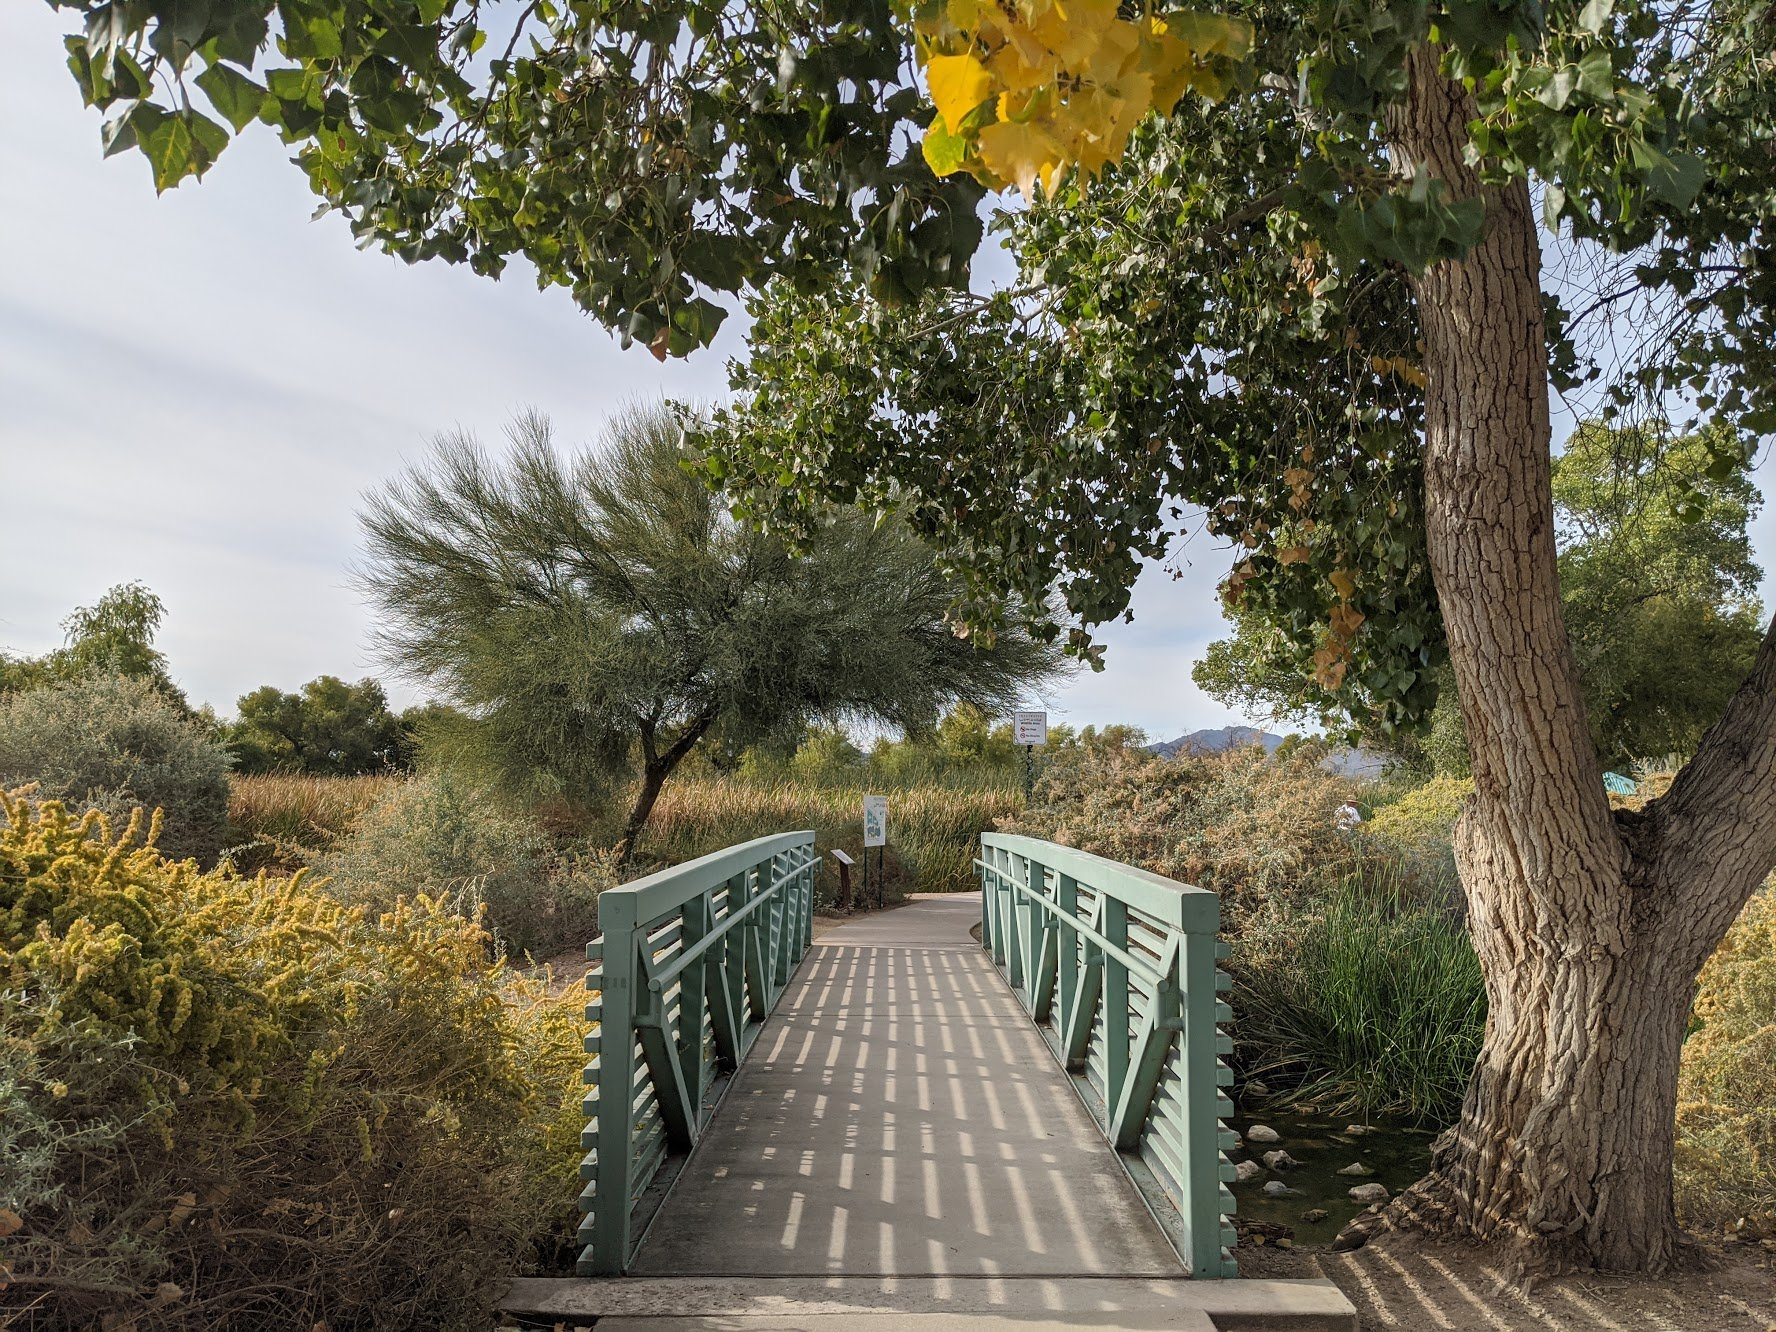 green bridge among changing trees at sweetwater wetlands park in tucson arizona